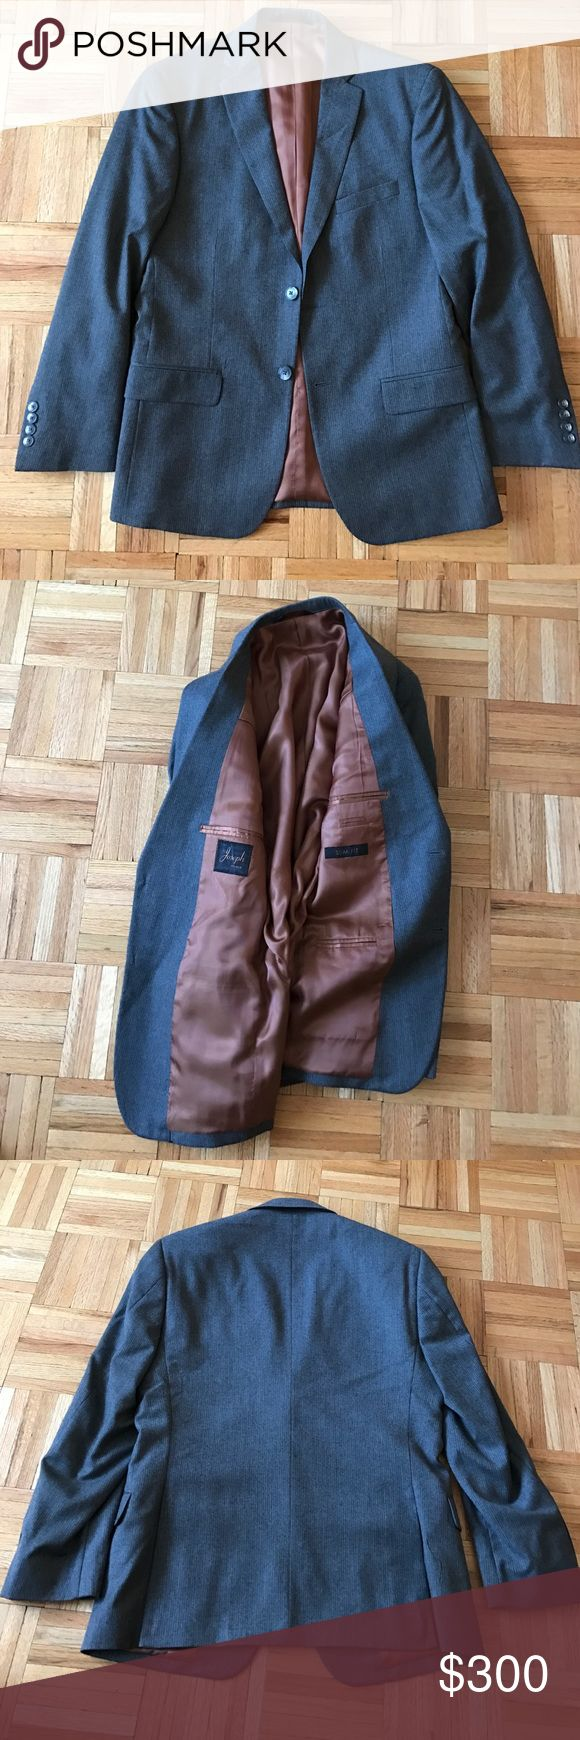 Jos A Bank Slim Fit Suit Jacket and Pants Never worn. Unaltered. Pants waist is 32. Jos A Bank Suits & Blazers Suits